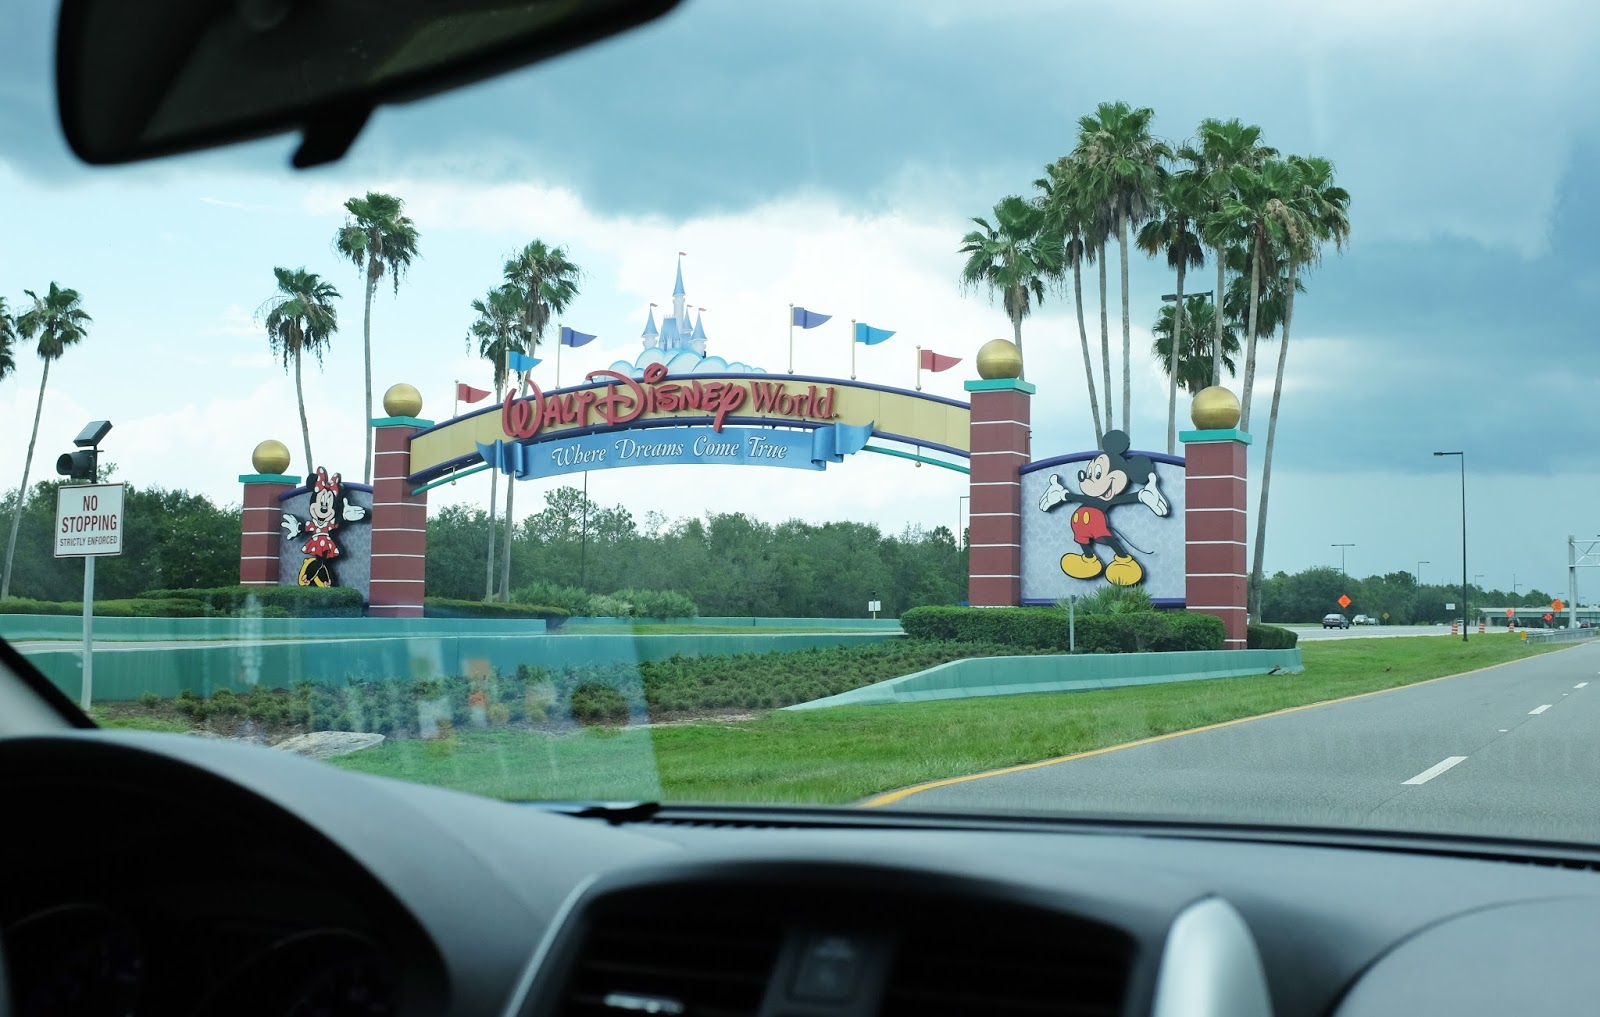 Hire car in Orlando, Florida